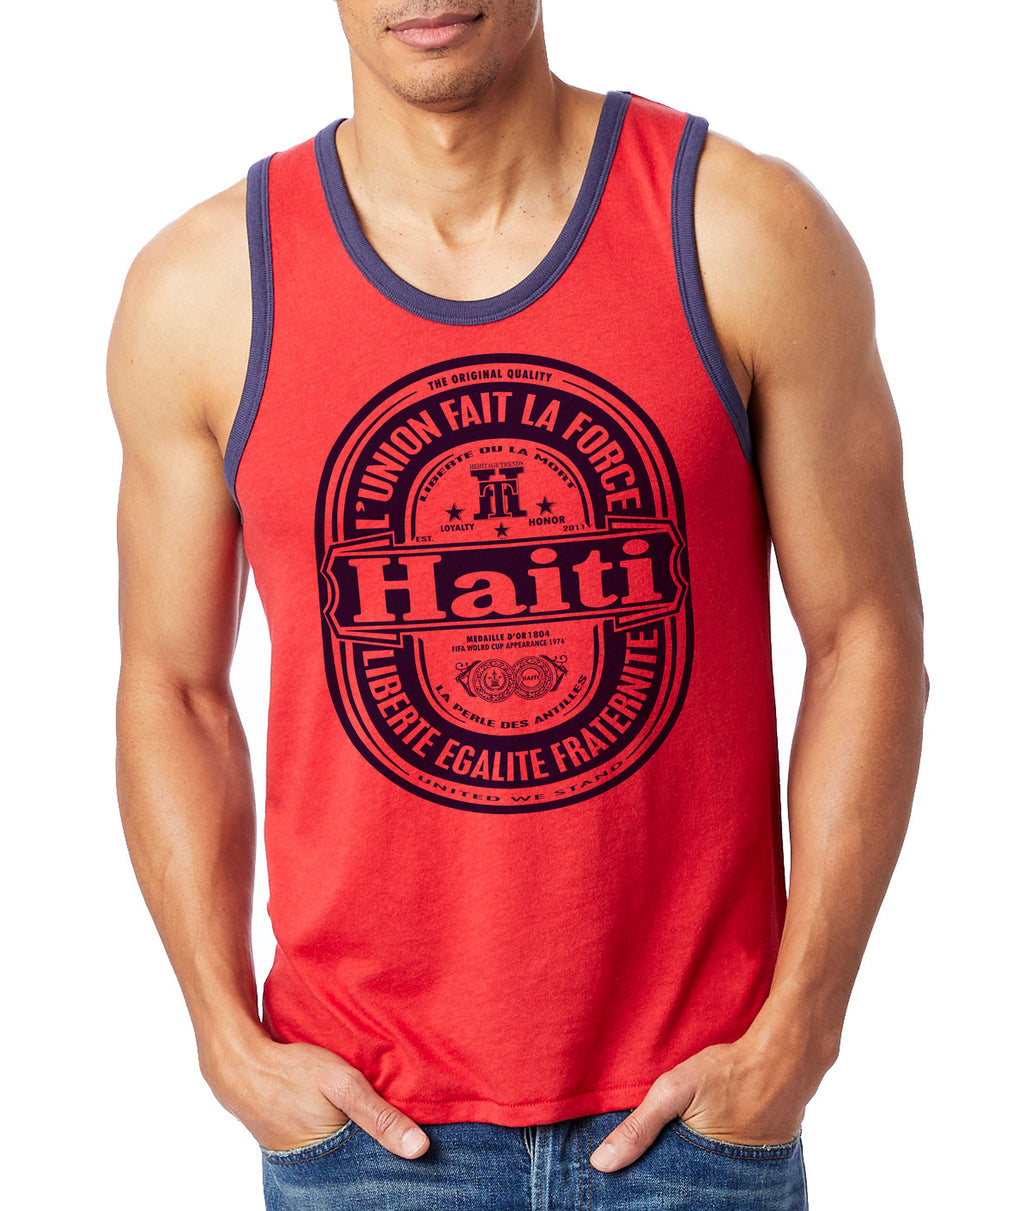 HAITI (L'union Fait La Force) RED/NAVY-RINGER TANK